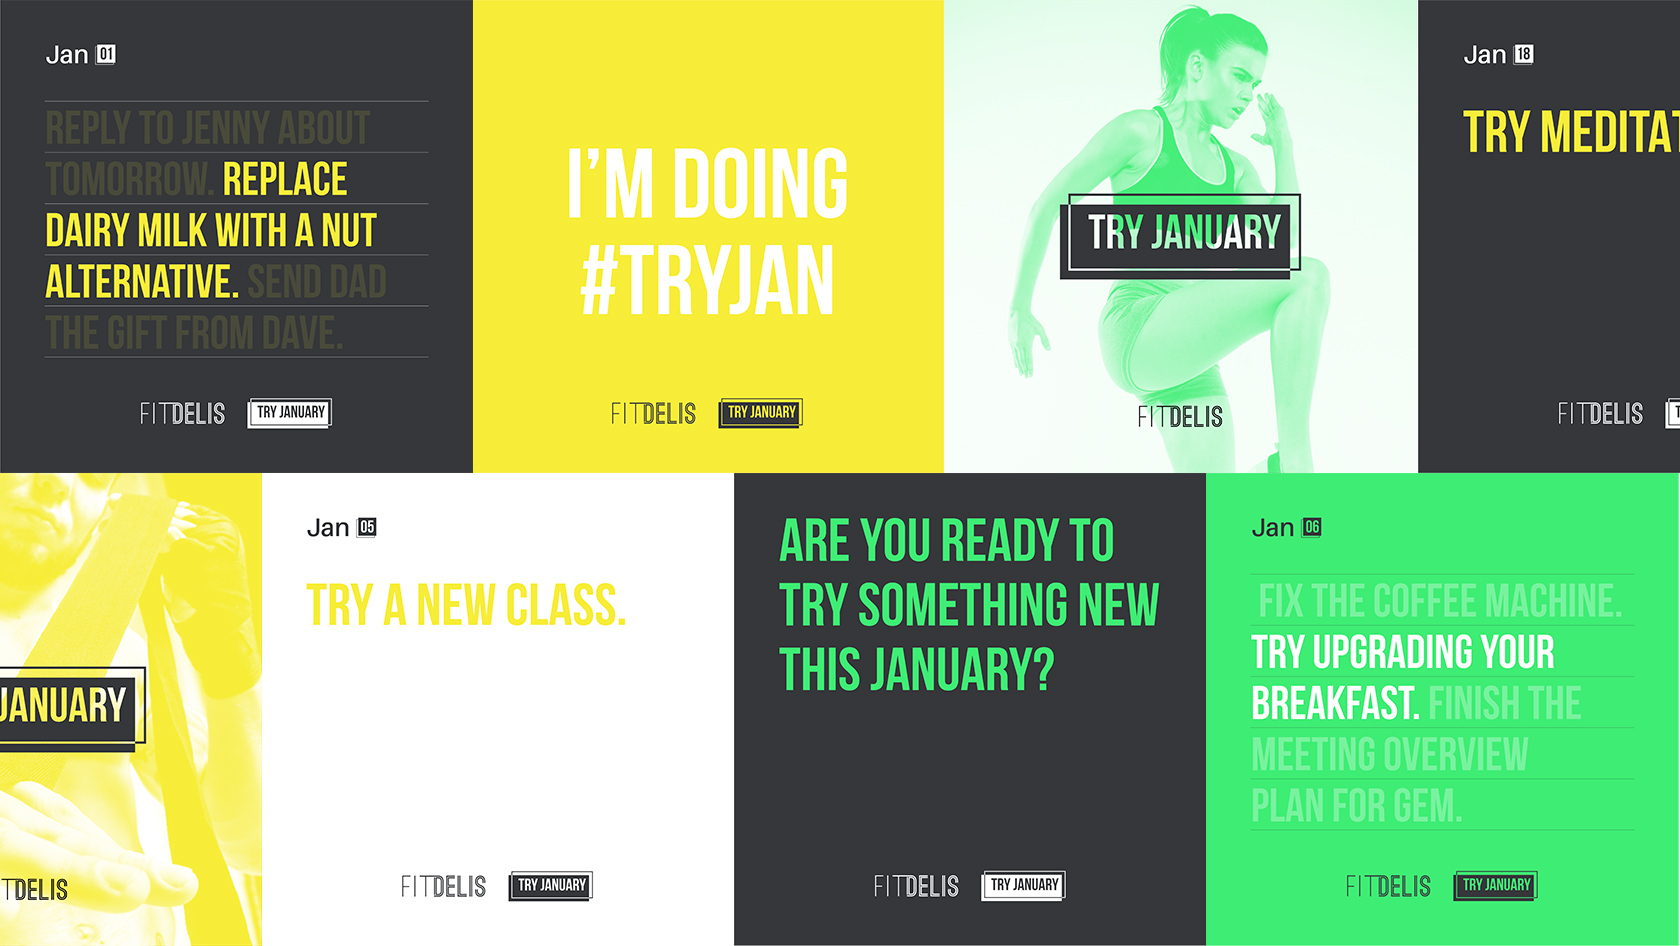 Various social media posts for Fit Delis' Try January campaign